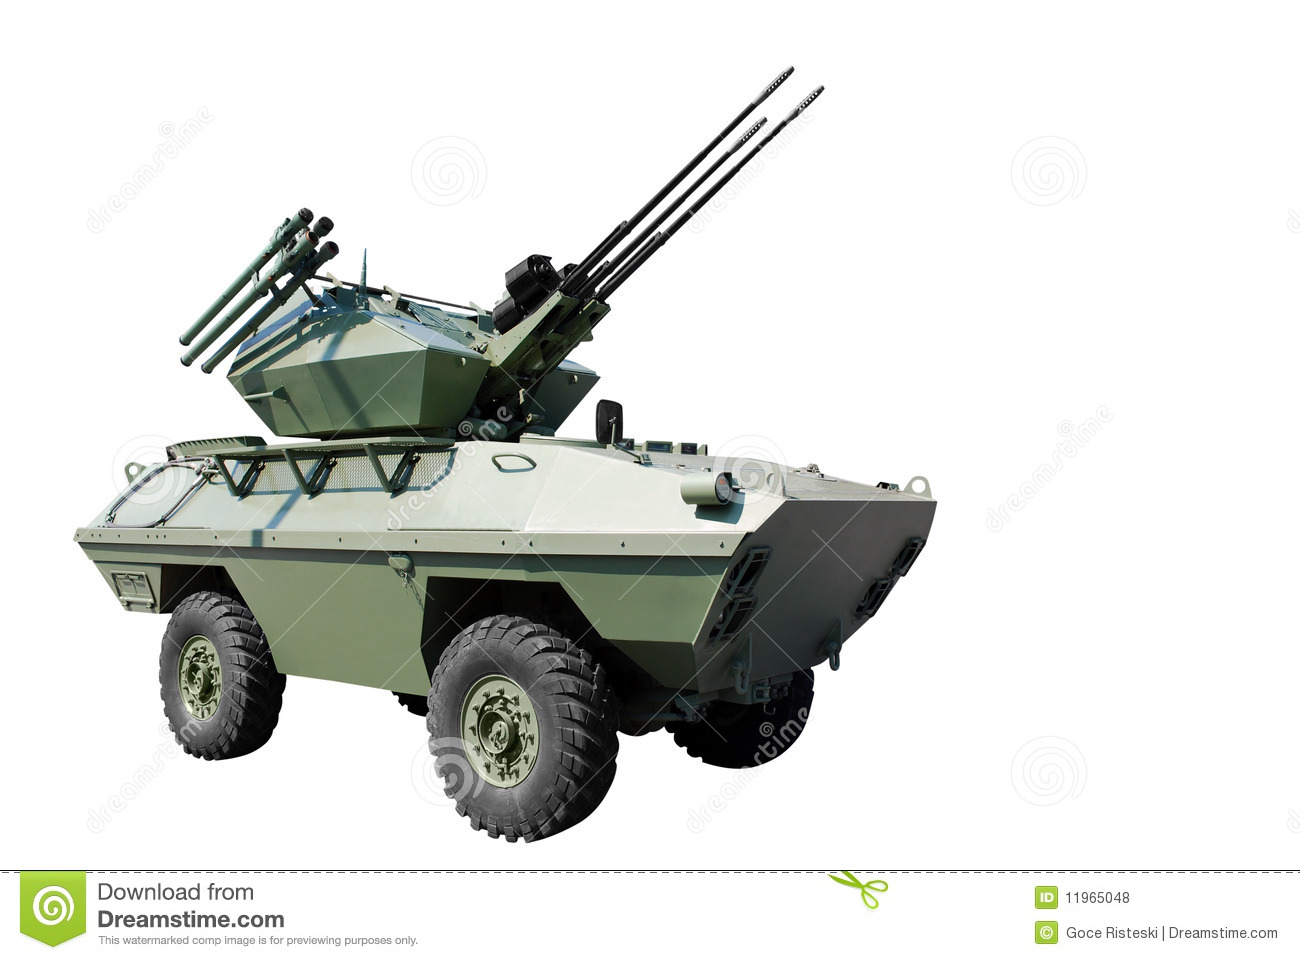 Auto Electrical Wiring Diagram Ryko Manufacturing Vacuum Post Armored Fighting Vehicle Stock Photo Image Of Military